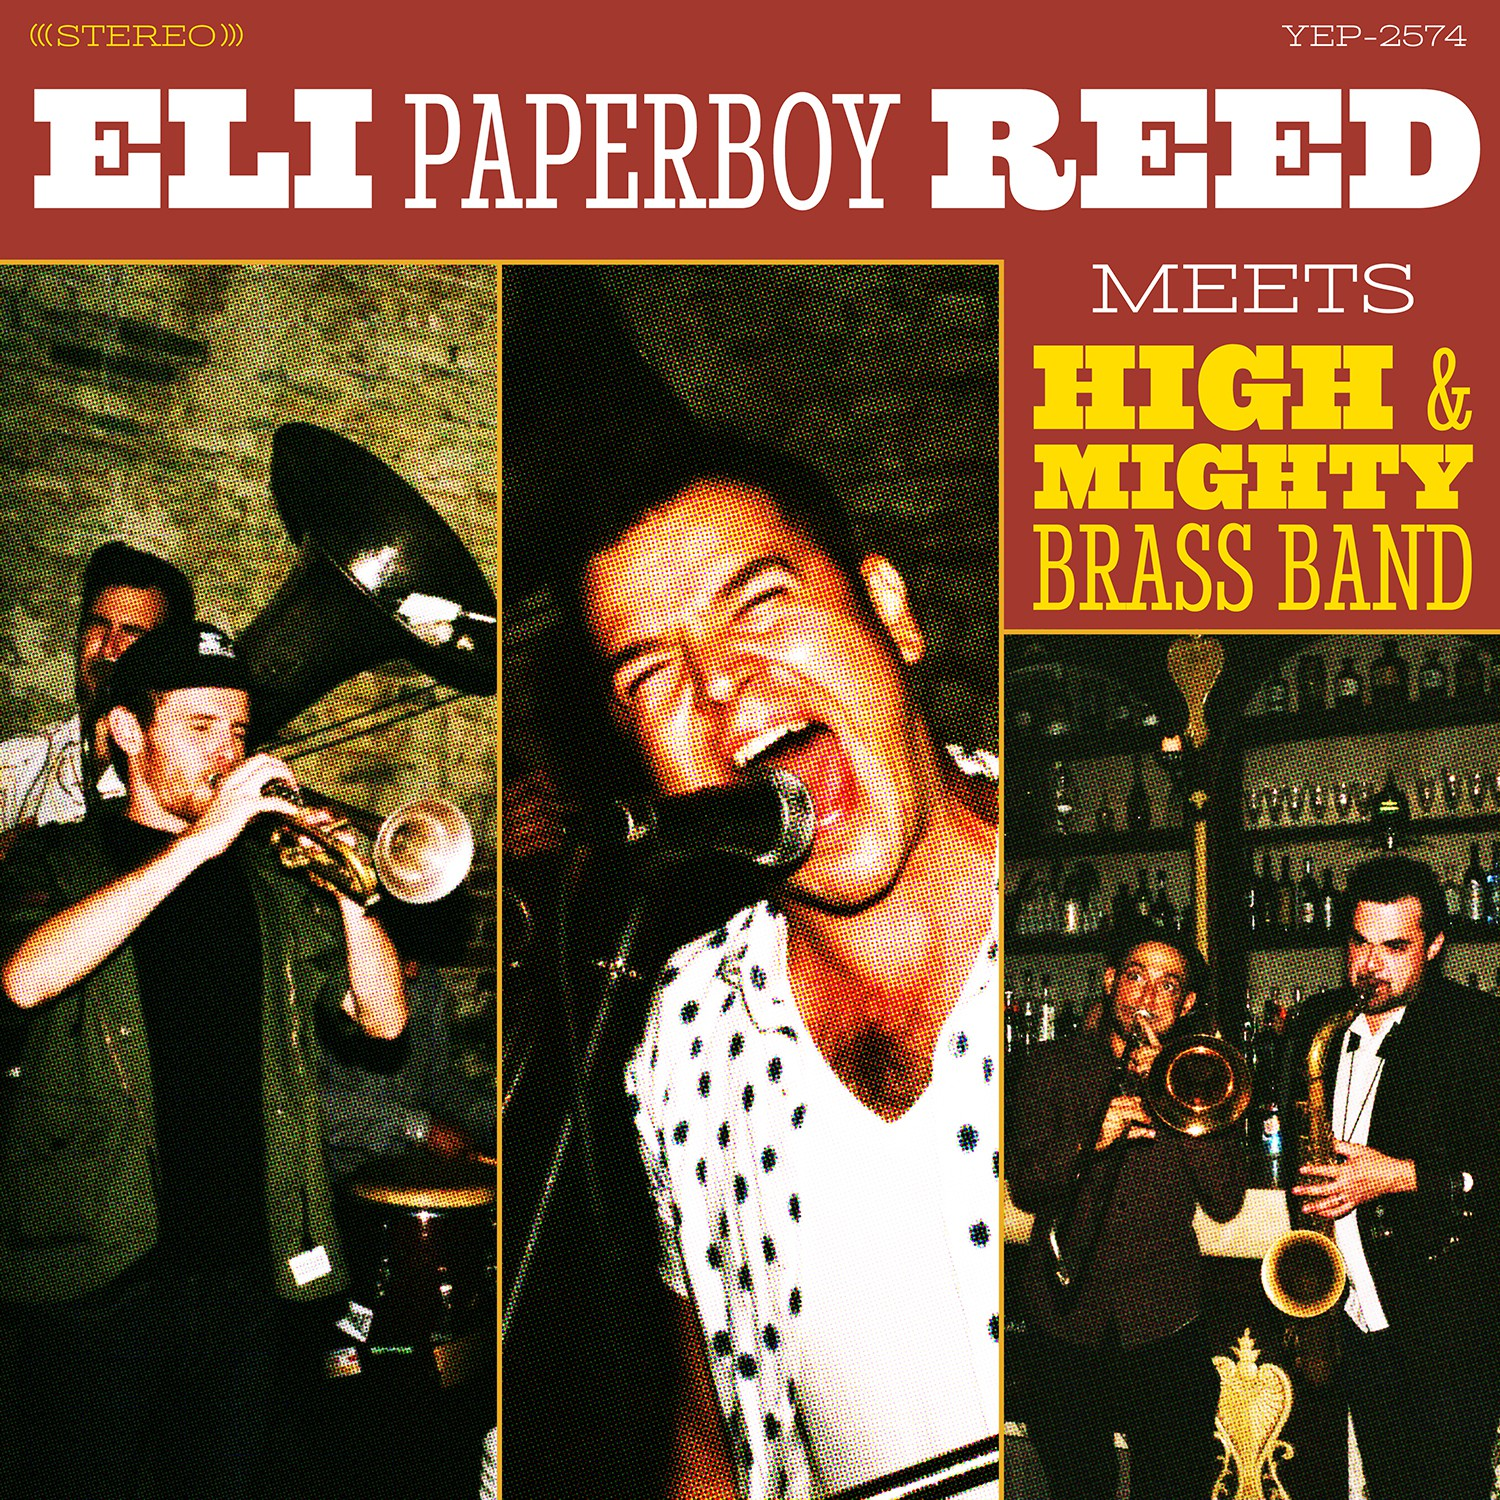 Eli Paperboy Reed Meets High & Mighty Brass Band CD/LP